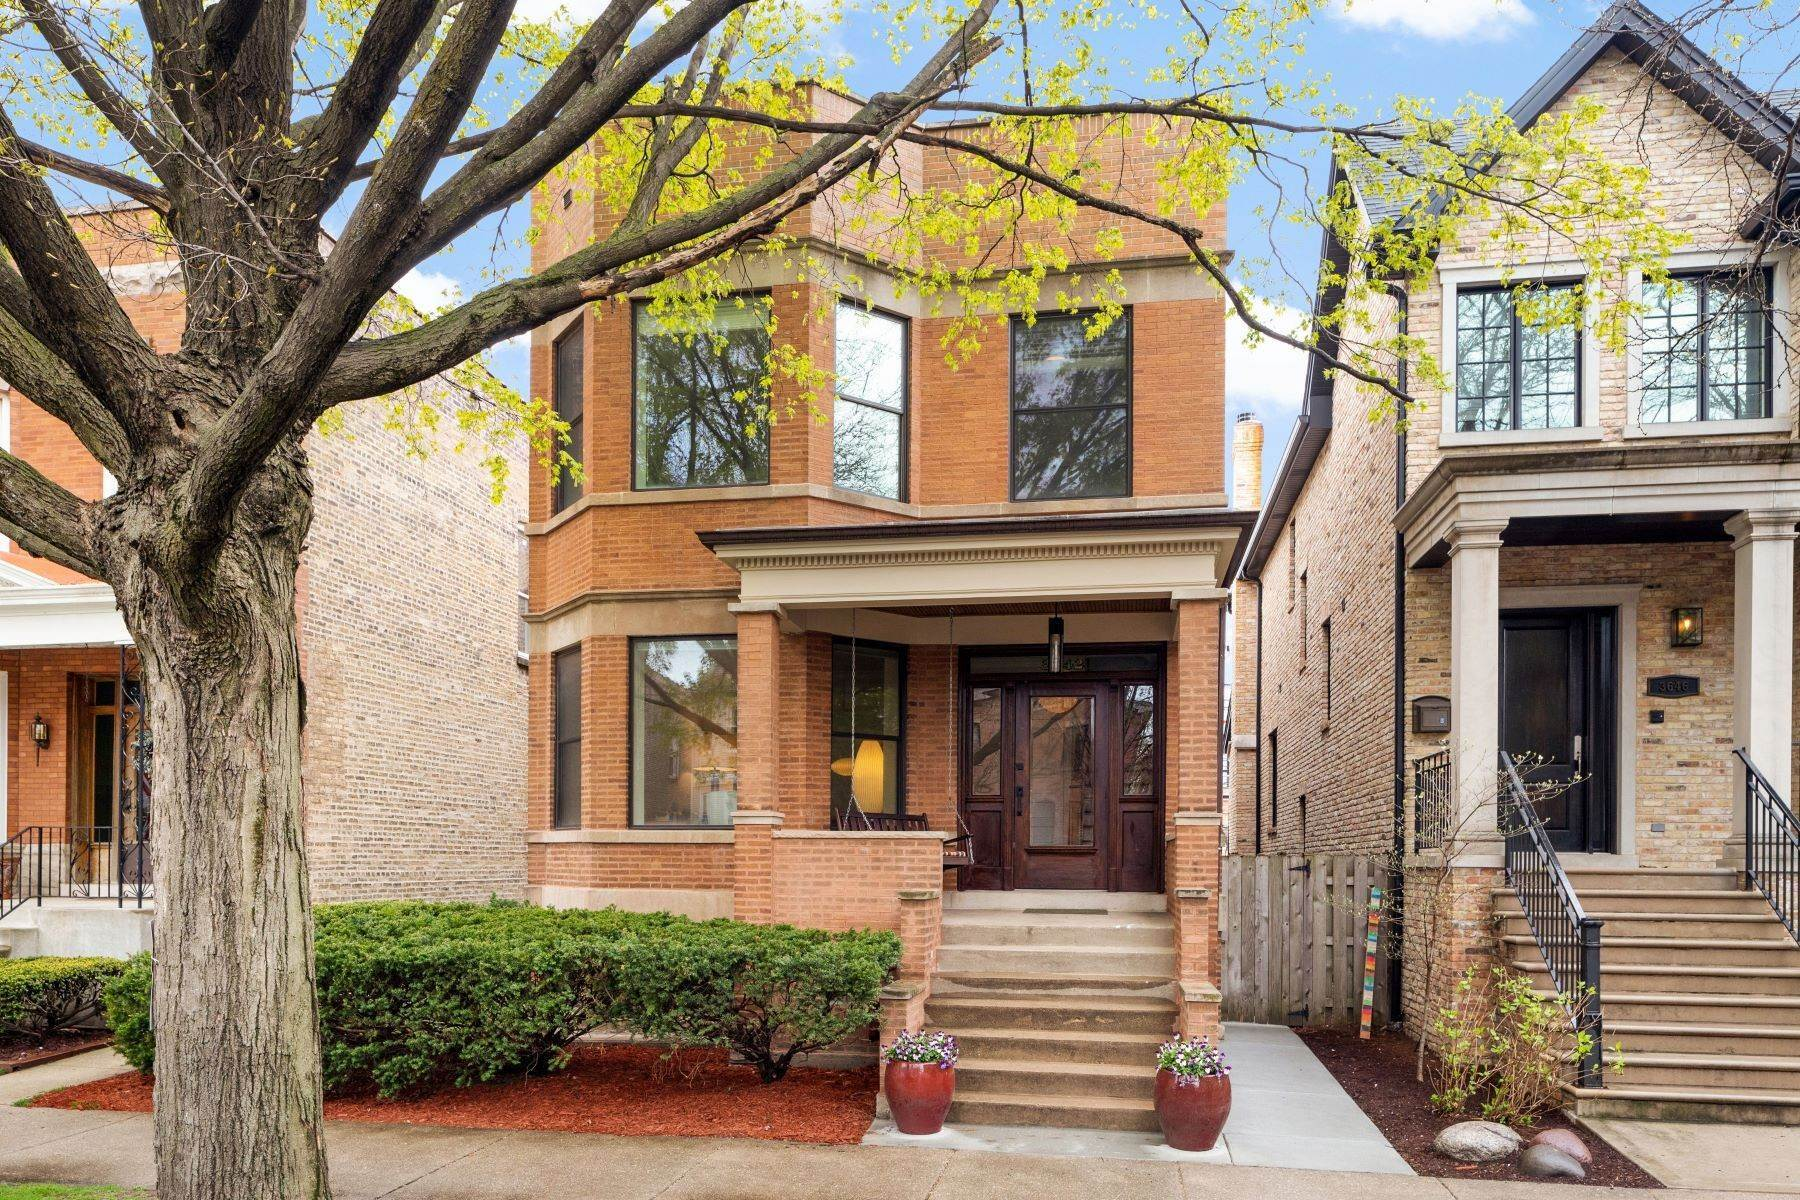 Single Family Homes for Sale at Rare Opportunity for the Home of Your Dreams 3642 N Hamilton Avenue Chicago, Illinois 60618 United States